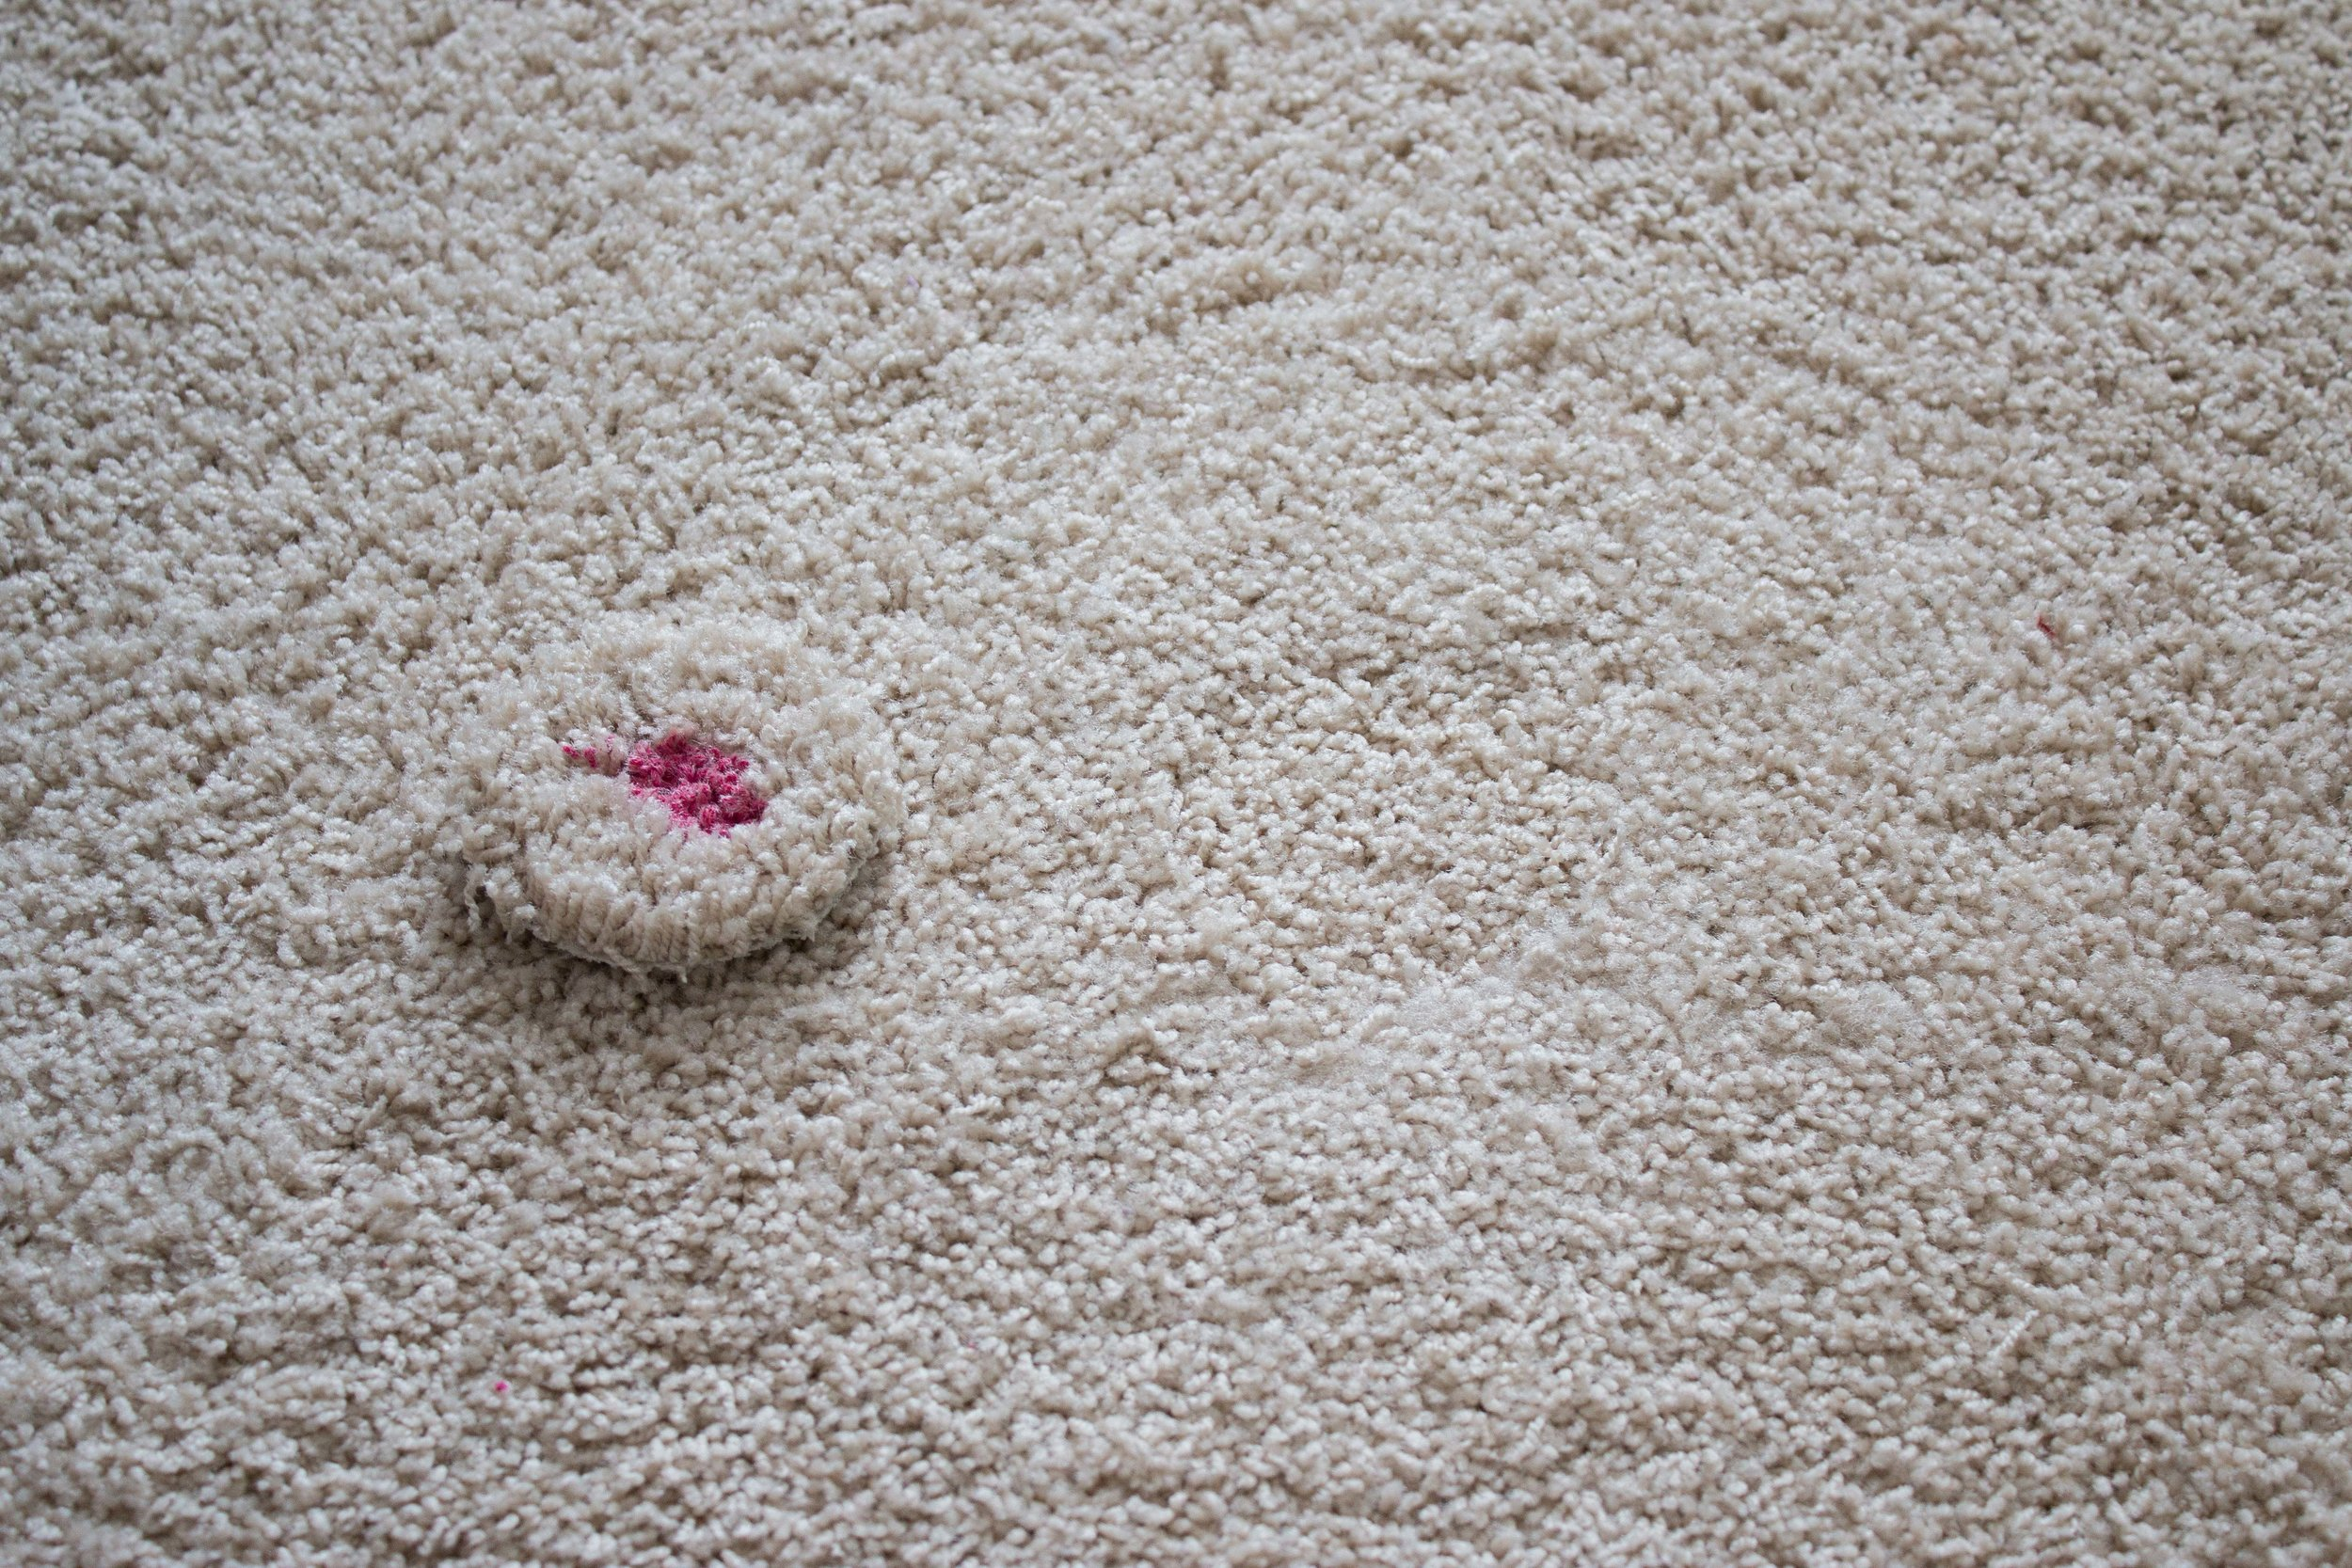 Carpet patched to remove red stain performed by Columbia Carpet Cleaning